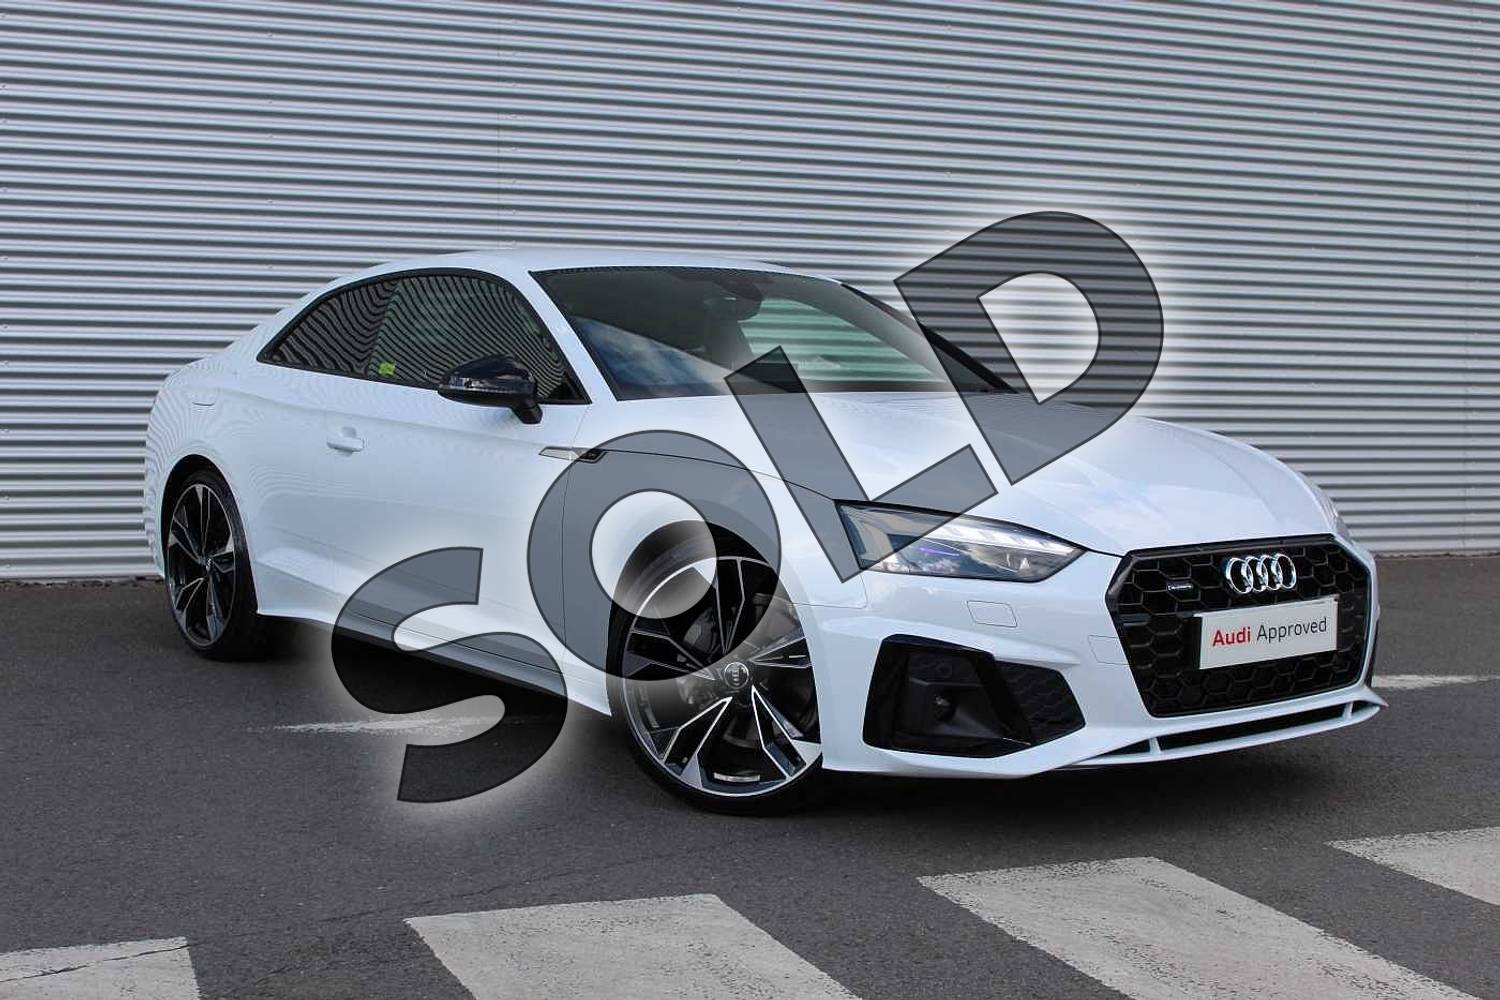 Audi A5 40 Tdi Quattro Edition 1 2dr S Tronic For Sale At Coventry Audi Ref 021 U167702